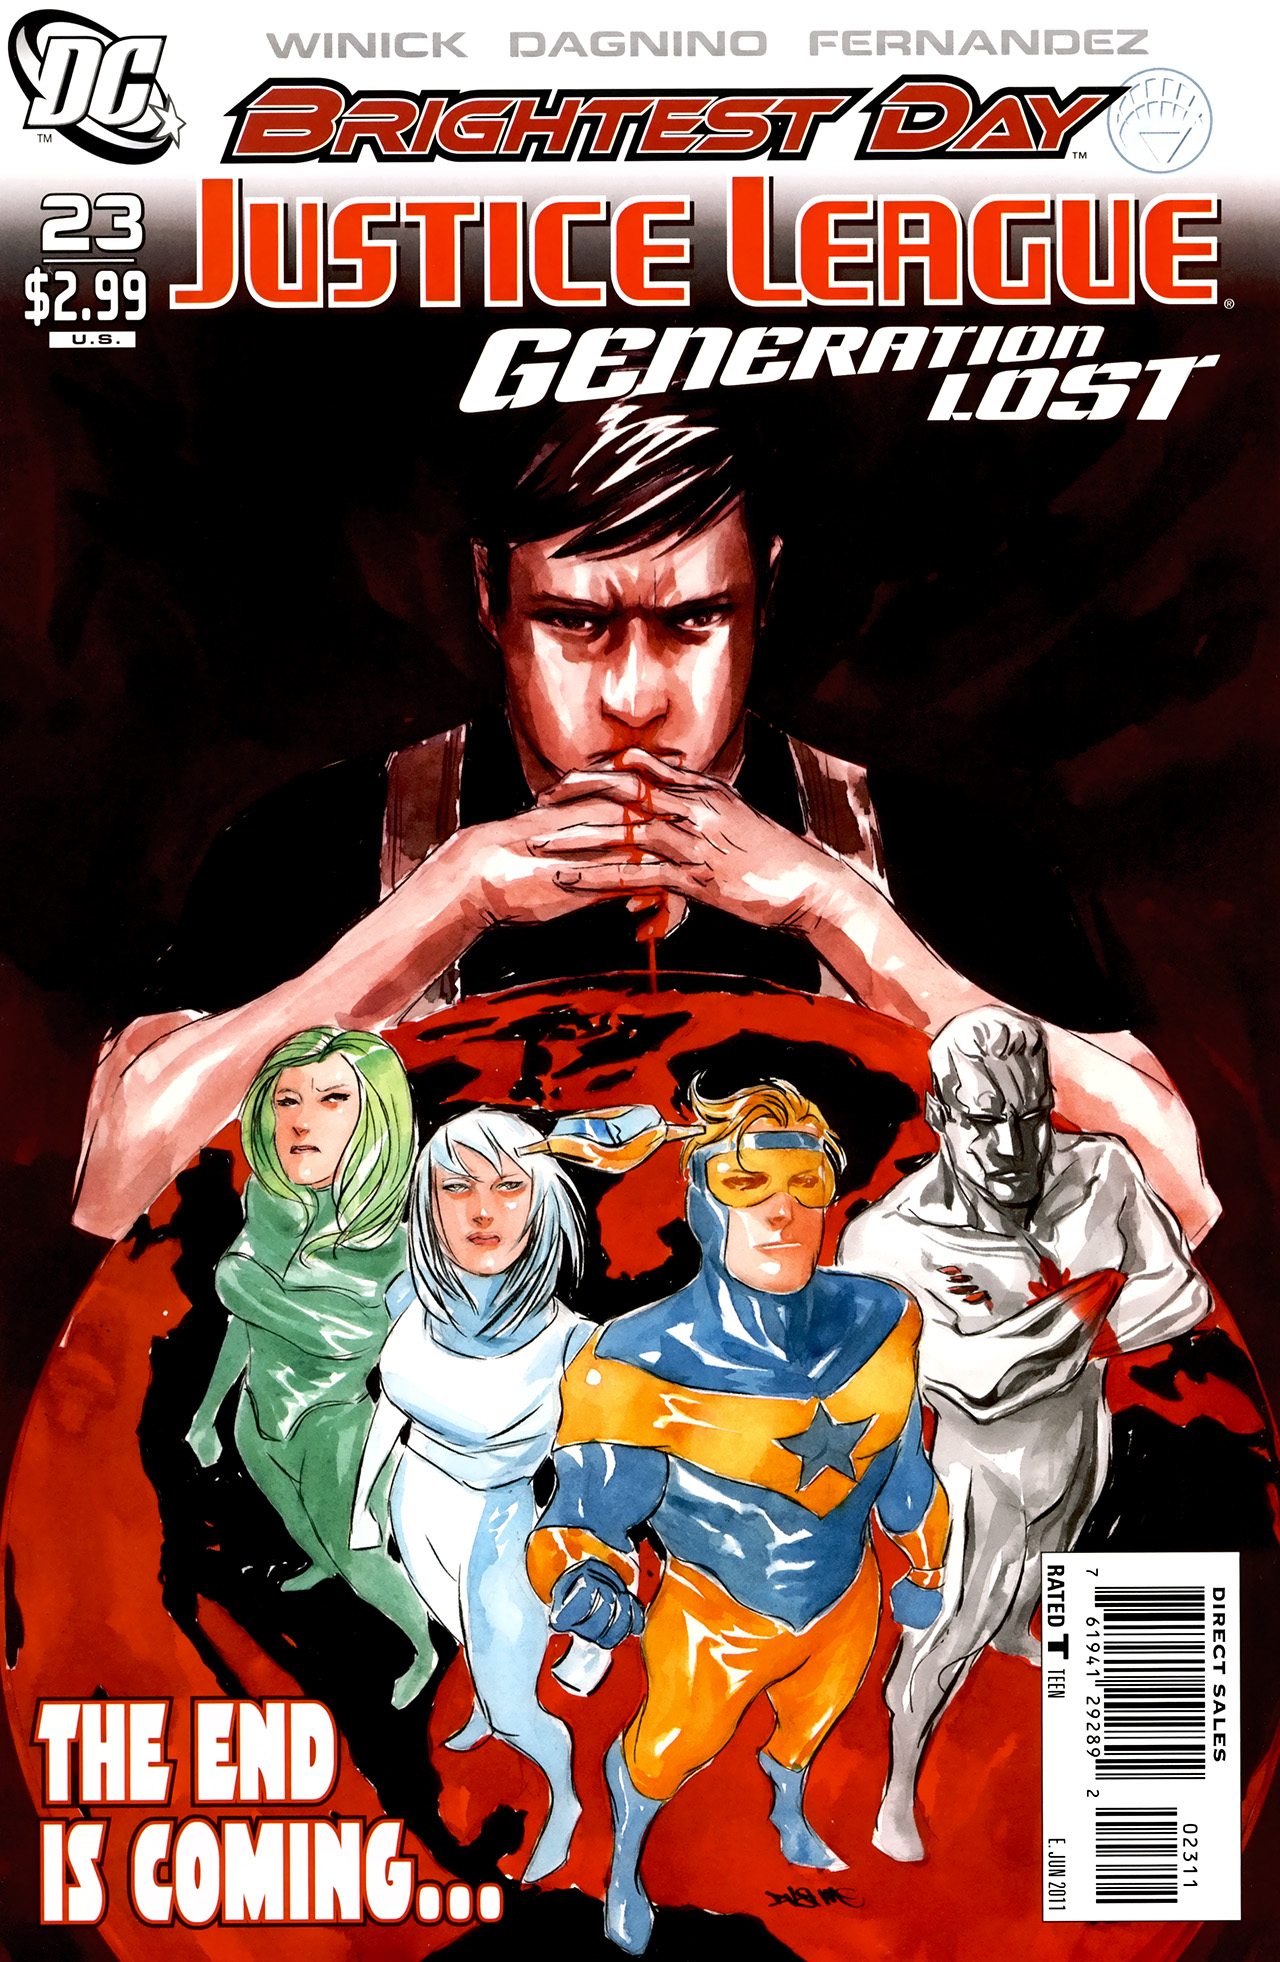 Read online Justice League: Generation Lost comic -  Issue #23 - 1